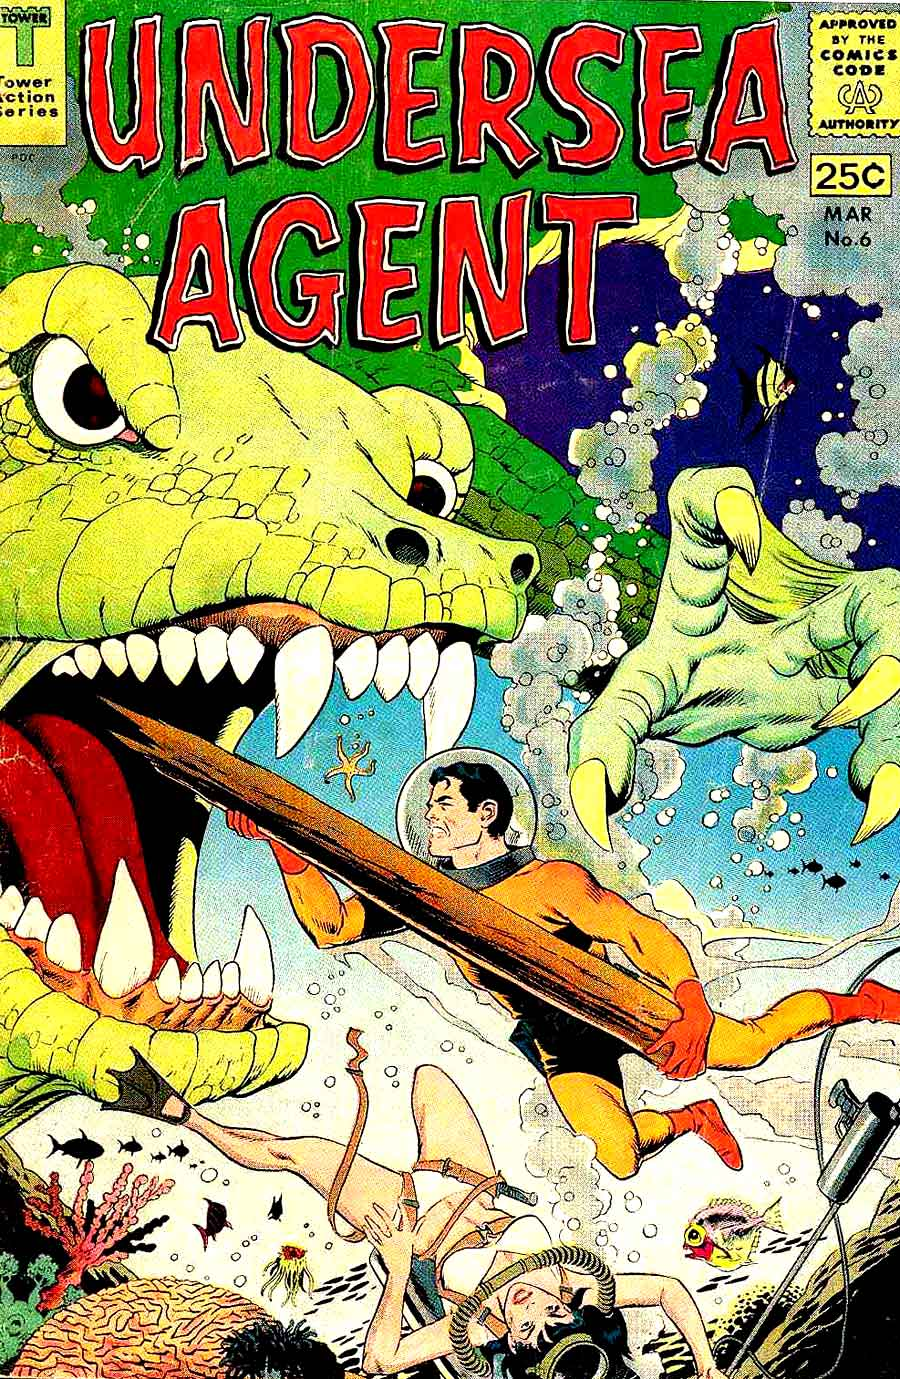 Undersea Agent v1 #6 tower silver age 1960s comic book cover art by Wally Wood